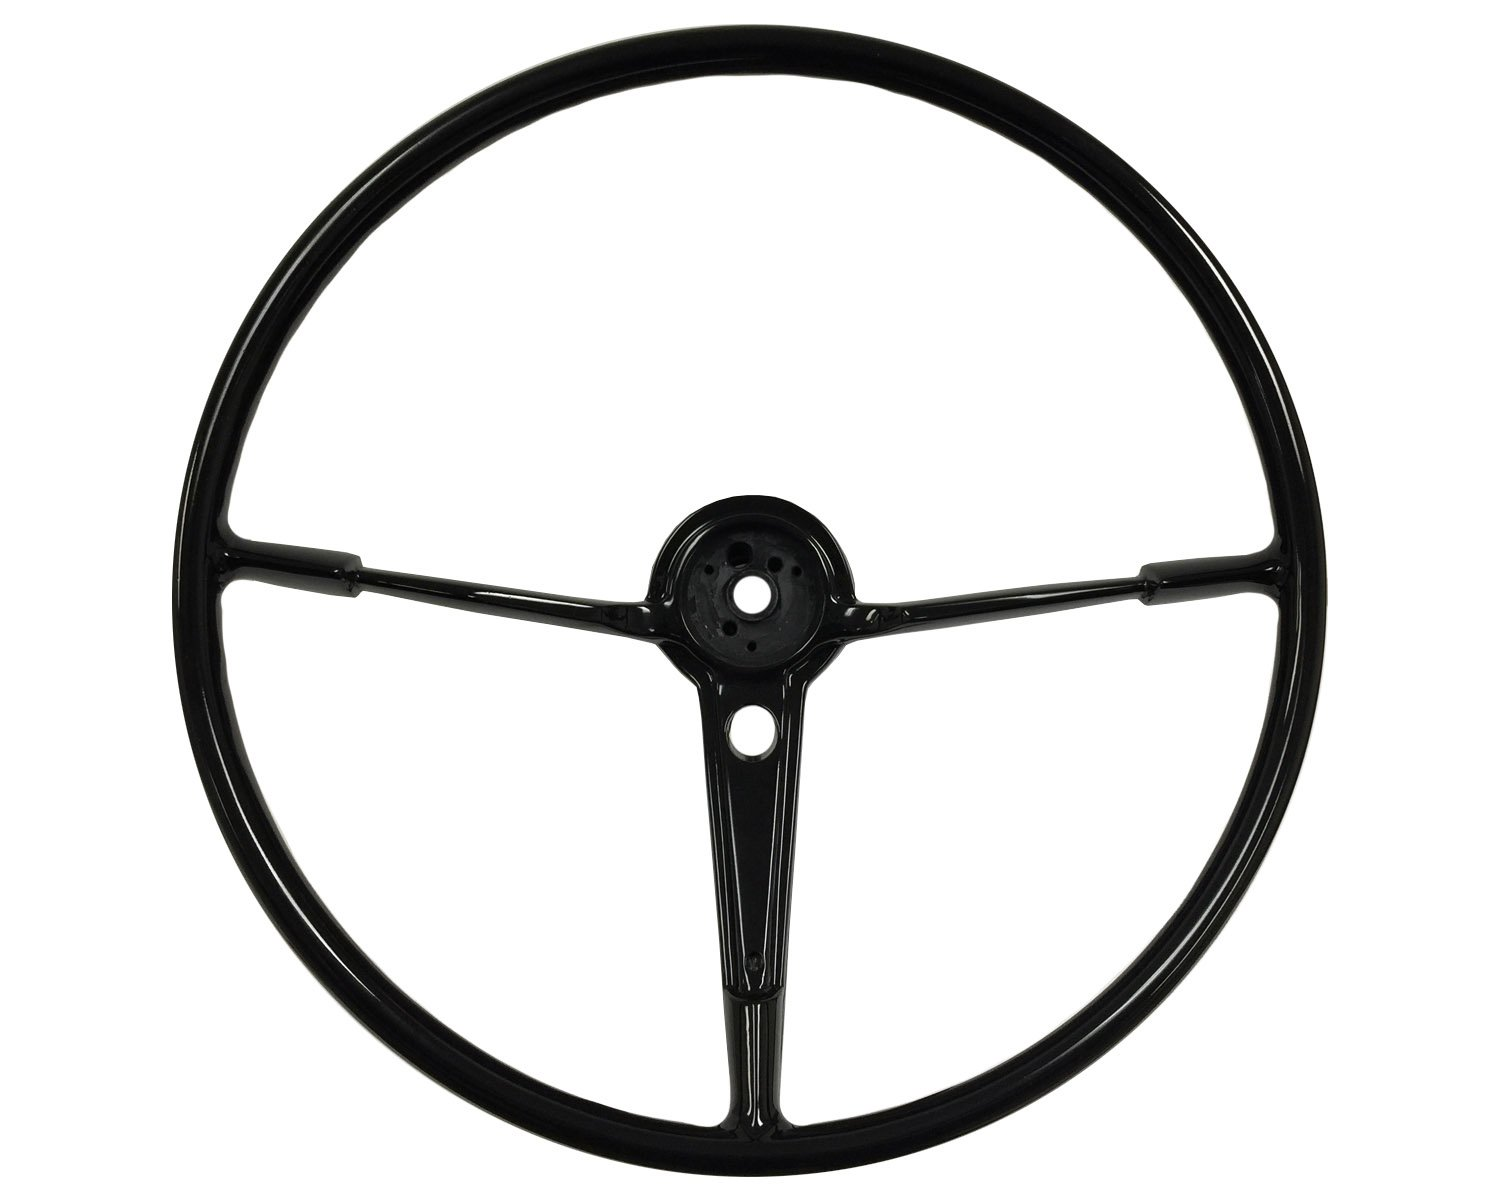 1955 1956 chevy bel air 210 steering wheel 16 restomod black 1956 Chevy Convertible 1955 1956 chevy bel air 210 steering wheel 16 restomod black steering wheels amazon canada